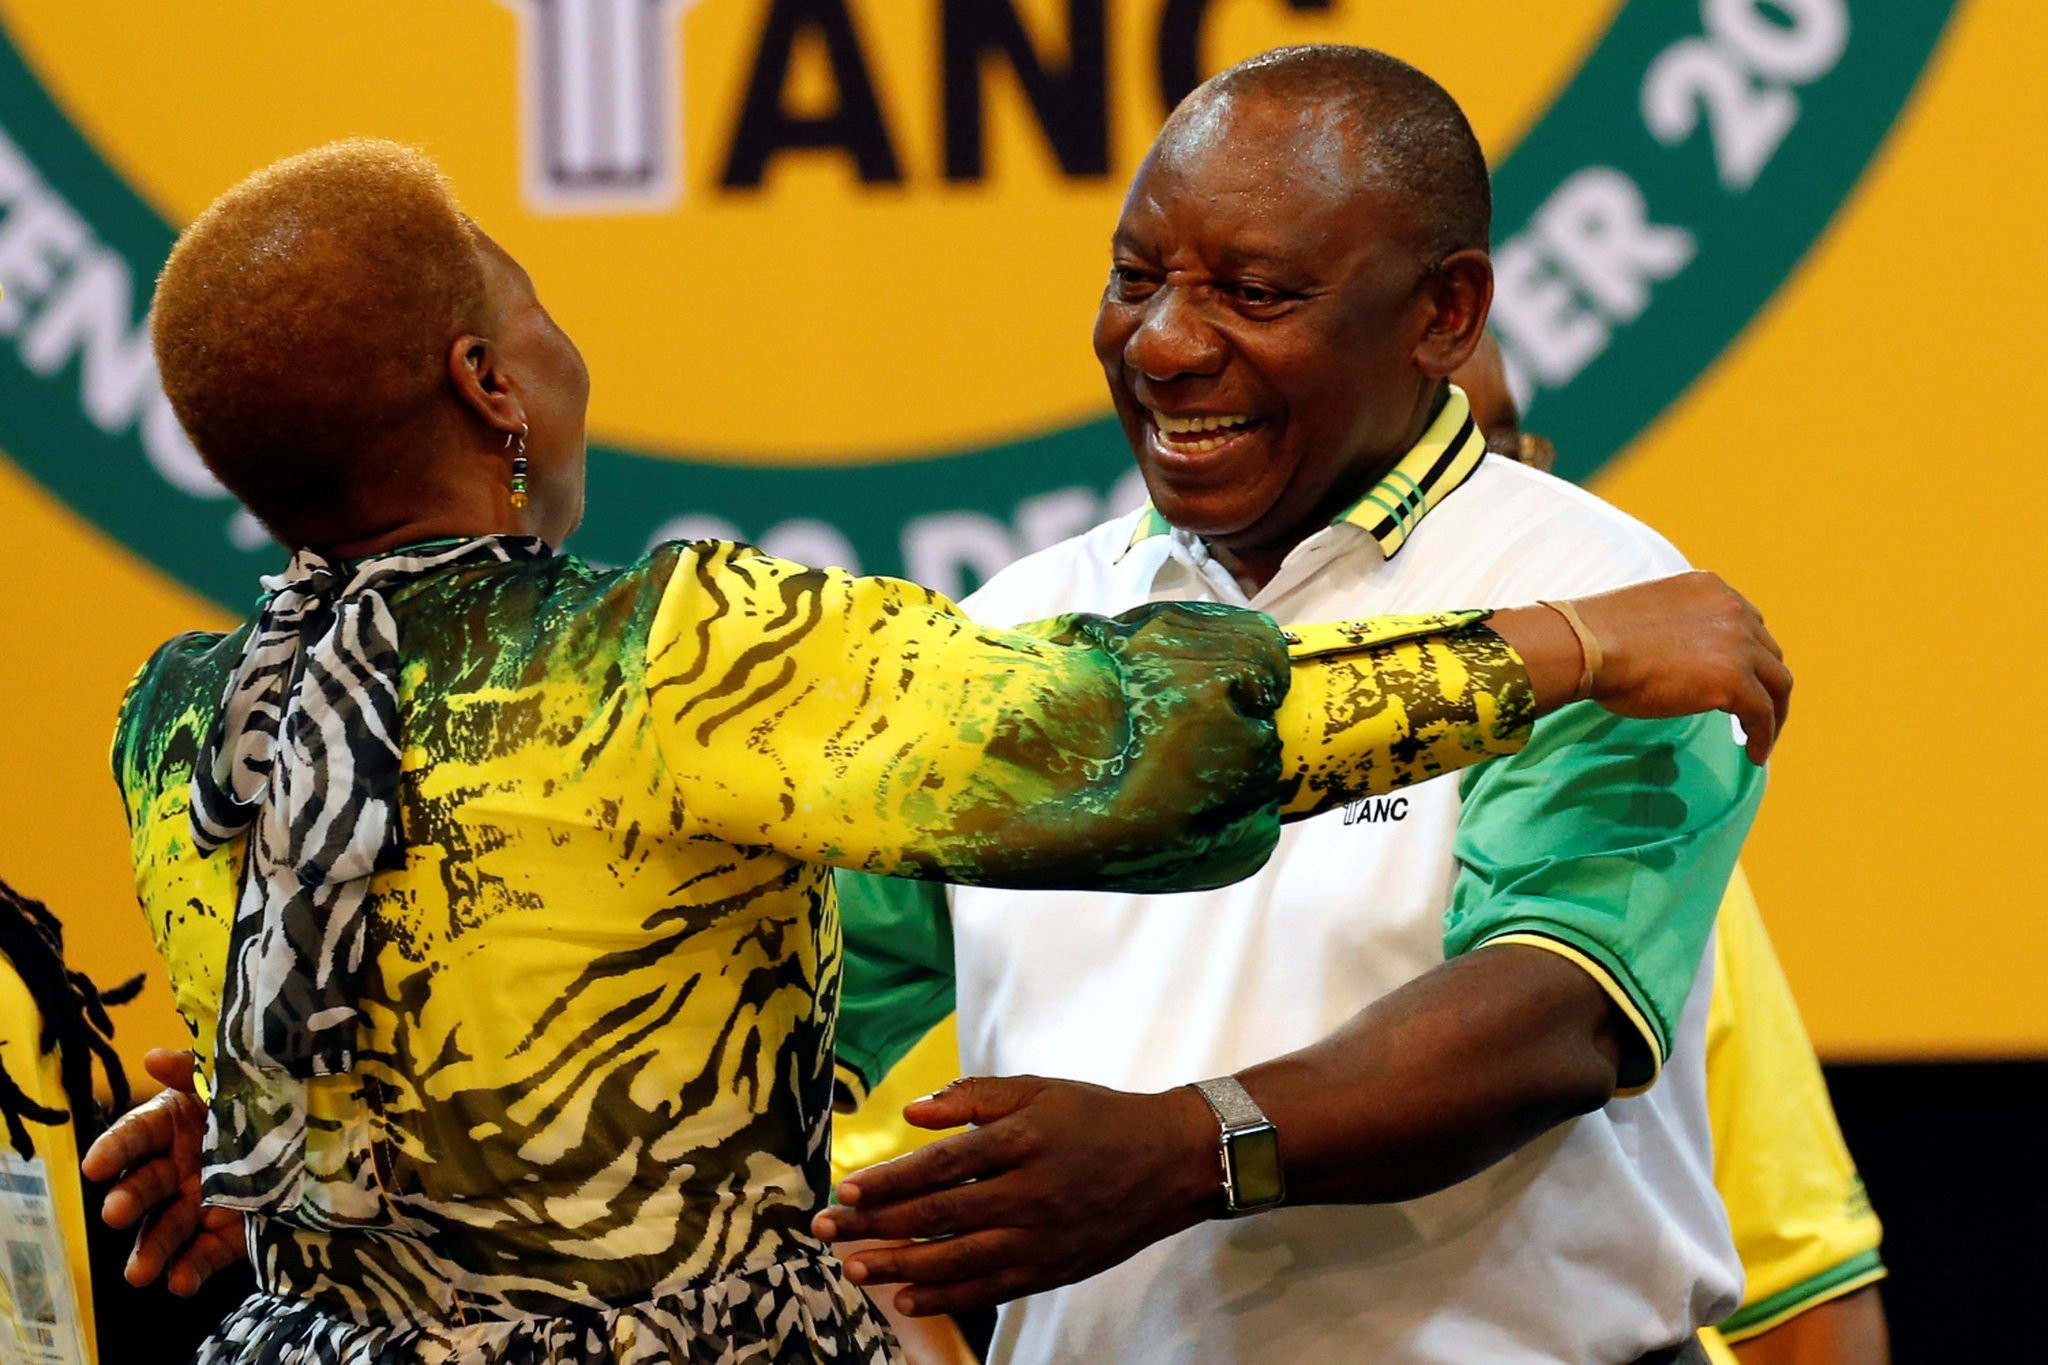 Deputy president of South Africa Cyril Ramaphosa greets an ANC member during the 54th National Conference of the ruling African National Congress (ANC) at the Nasrec Expo Centre in Johannesburg, South Africa December 18, 2017. (REUTERS Photo)